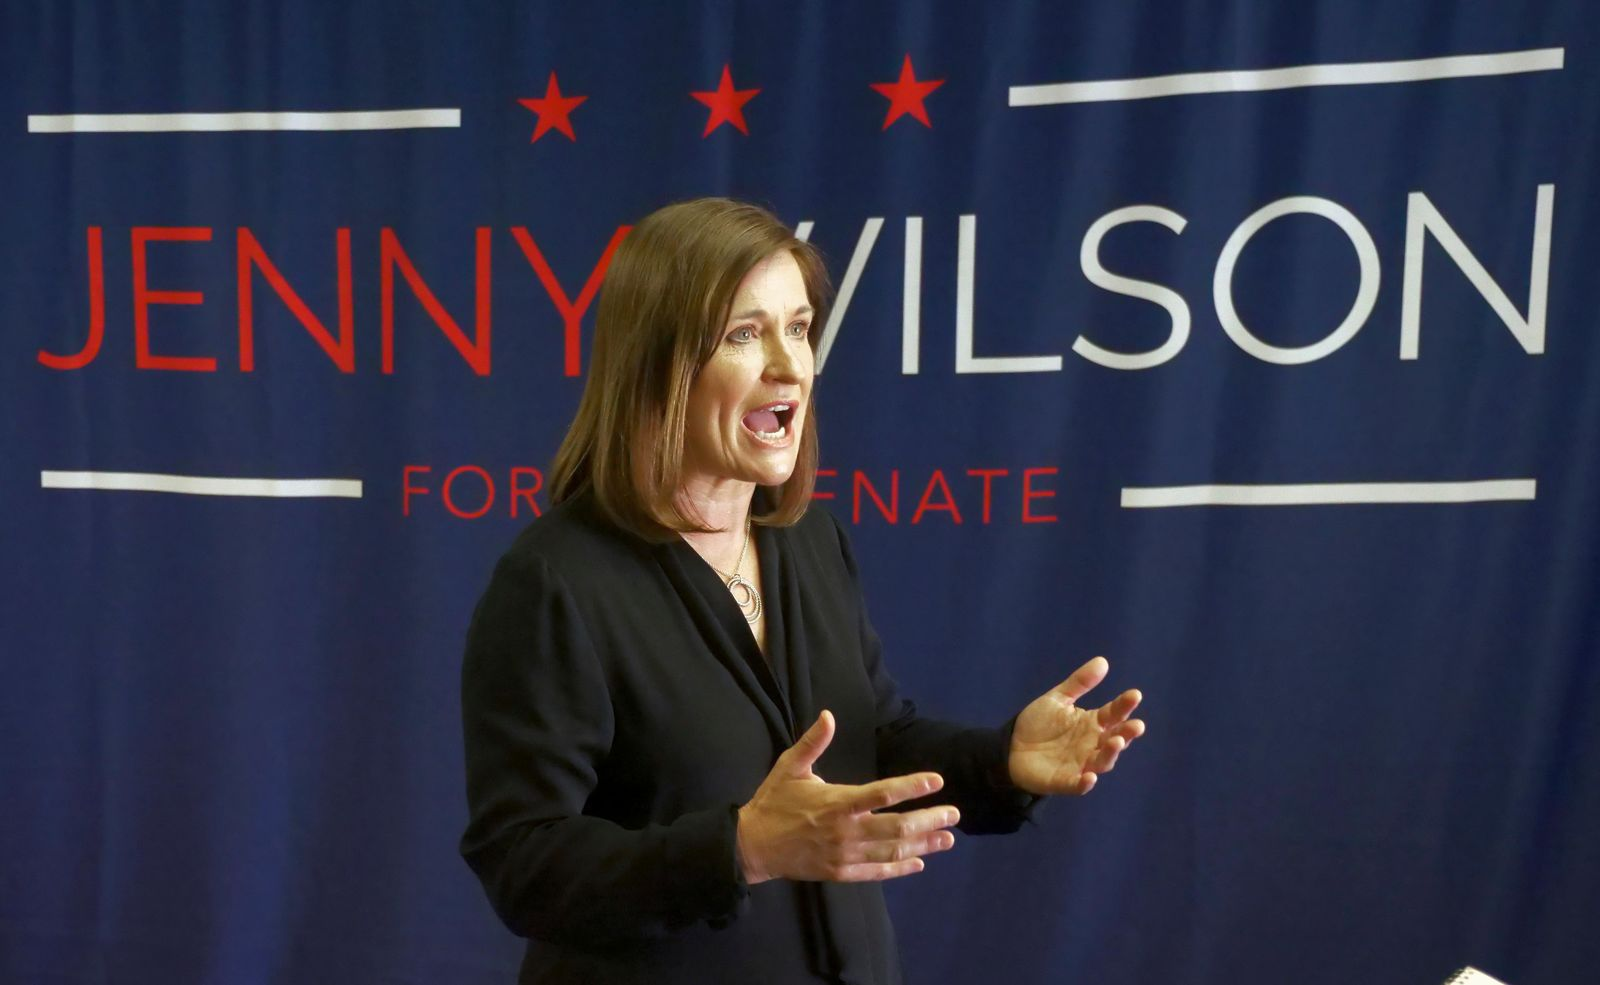 FILE - In this June 27, 2018, file photo, Democratic Senate candidate Jenny Wilson speaks during an interview, in Salt Lake City. Mitt Romney's opponent, Wilson, also is working the phones and canvassing for her party's slate. She has criticized Romney's Arizona appearance in recent weeks to stump for Republican candidate Martha McSally, as evidence that he's more focused on national politics. (AP Photo/Rick Bowmer, File)